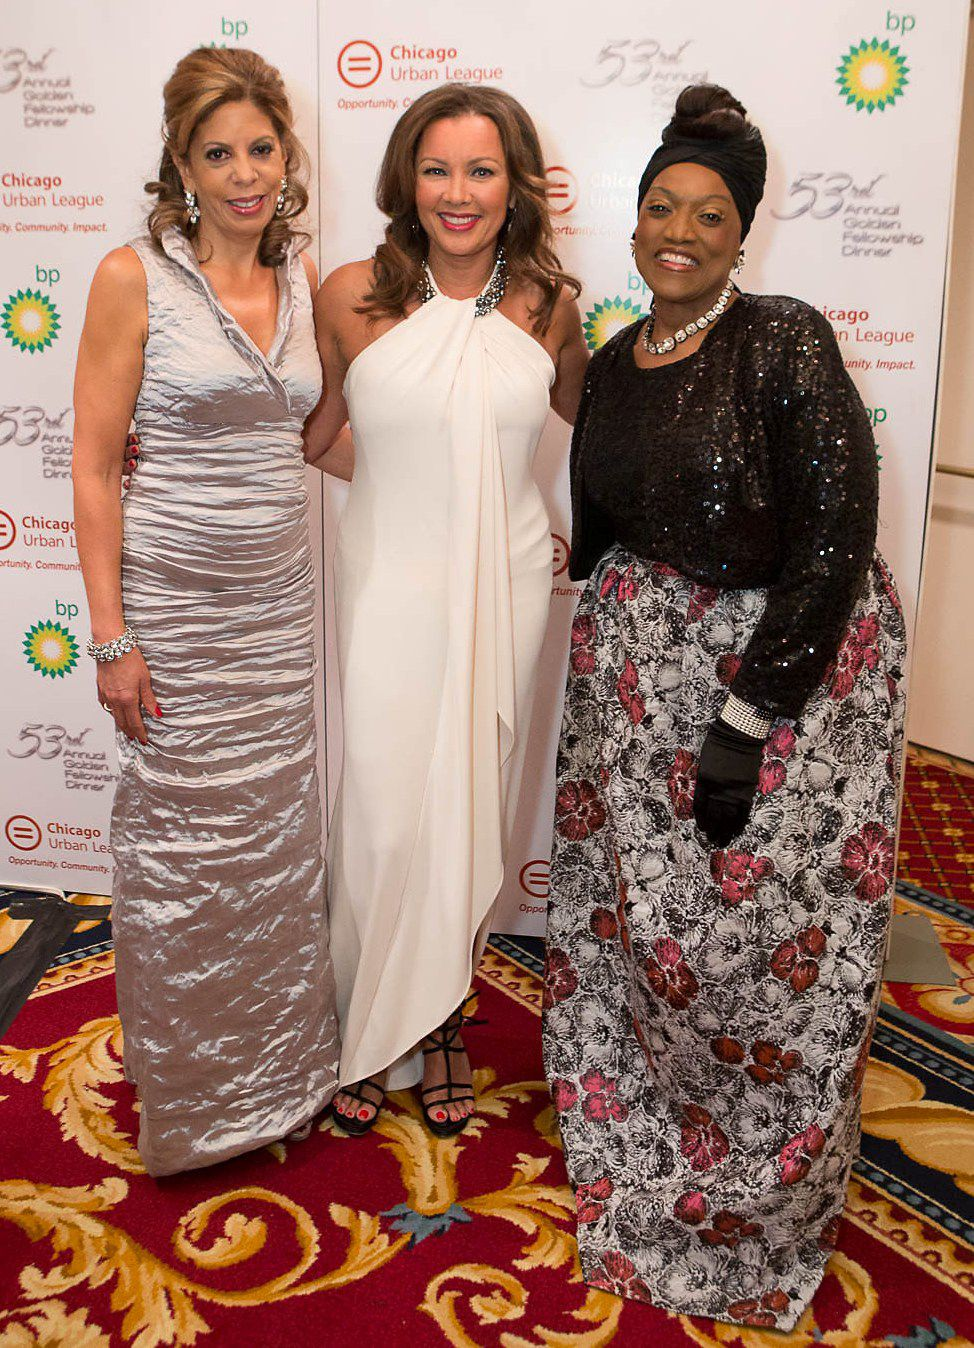 Andrea Zopp (then-president of the Chicago Urban League) is joined by Vanessa Williams and Jessye Norman at the Leagues' 53rdAnnual Golden Fellowship Dinner in 2014 where Norman was honored.